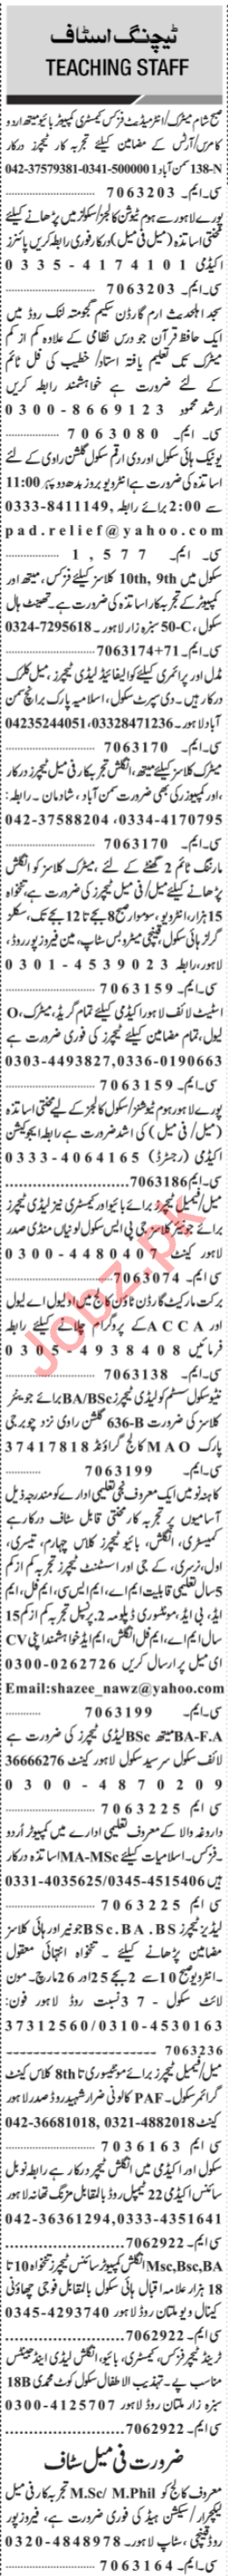 Jang Sunday Classified Ads 24th March 2019 for Teaching